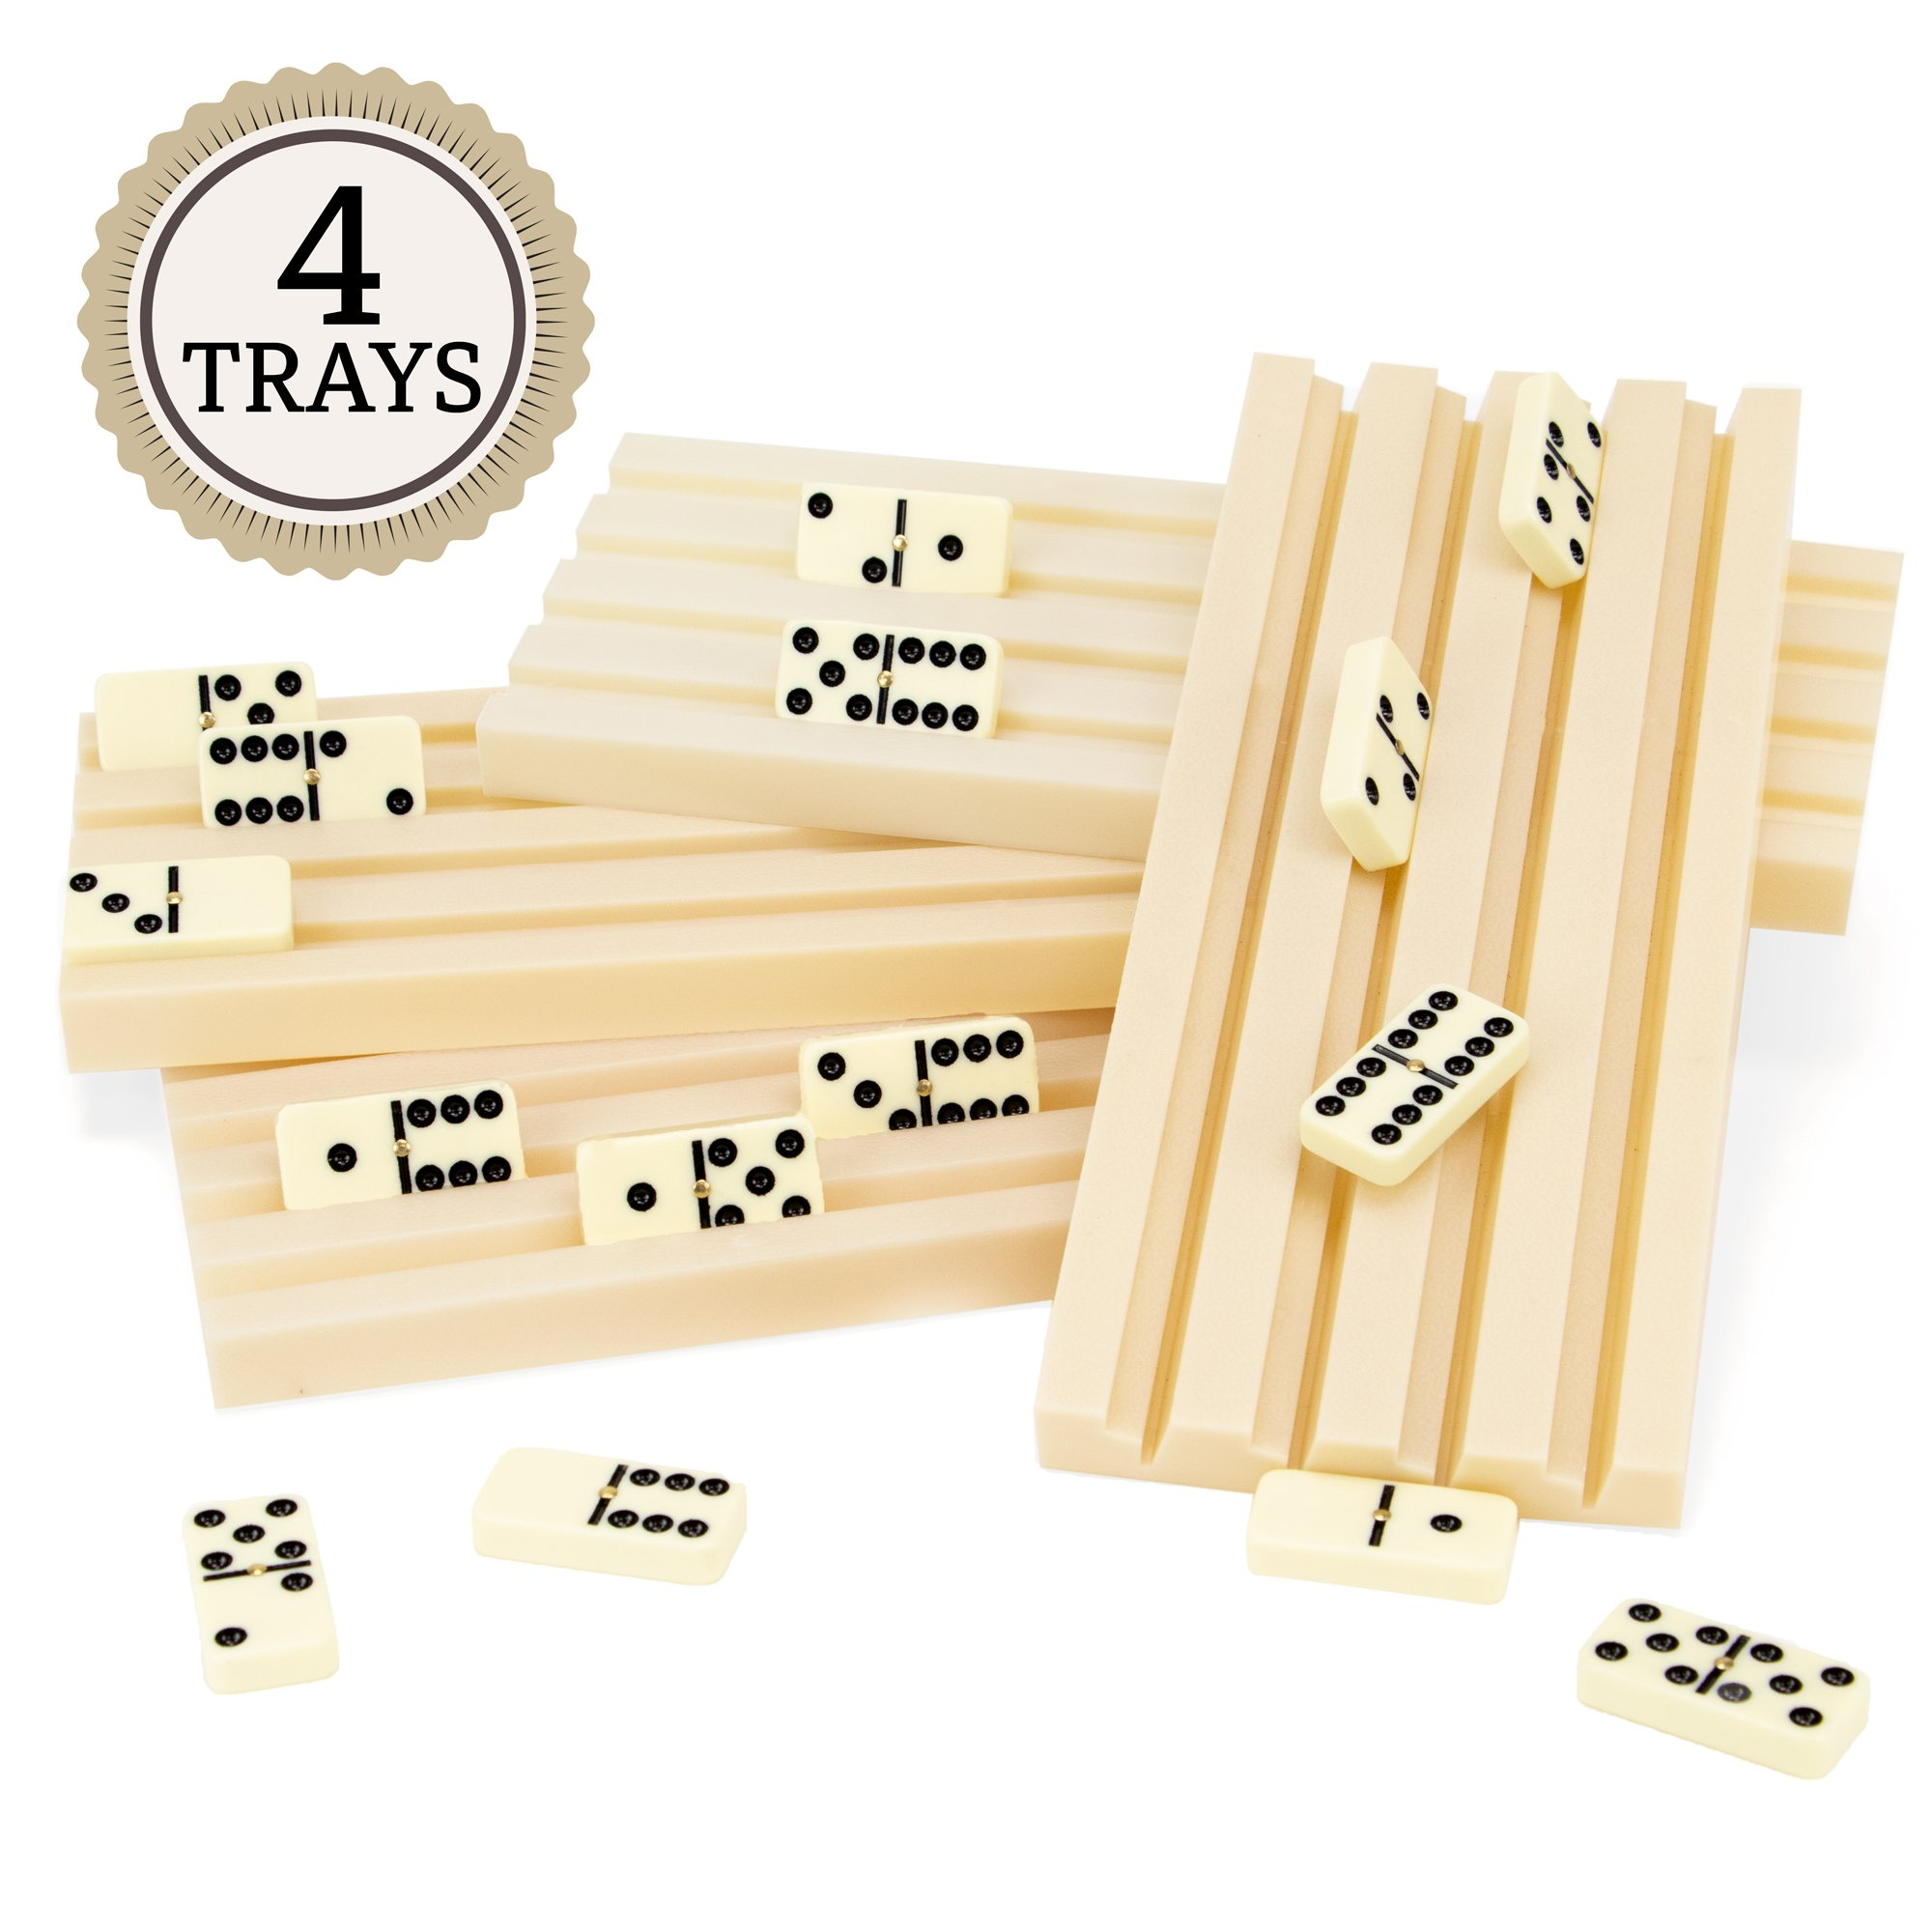 Brybelly Set of Four Plastic Domino Trays - Premium Holder Racks for Domino Tiles, Great for Mexican Train, Mahjong, Chickenfoot, Domino Games by Brybelly